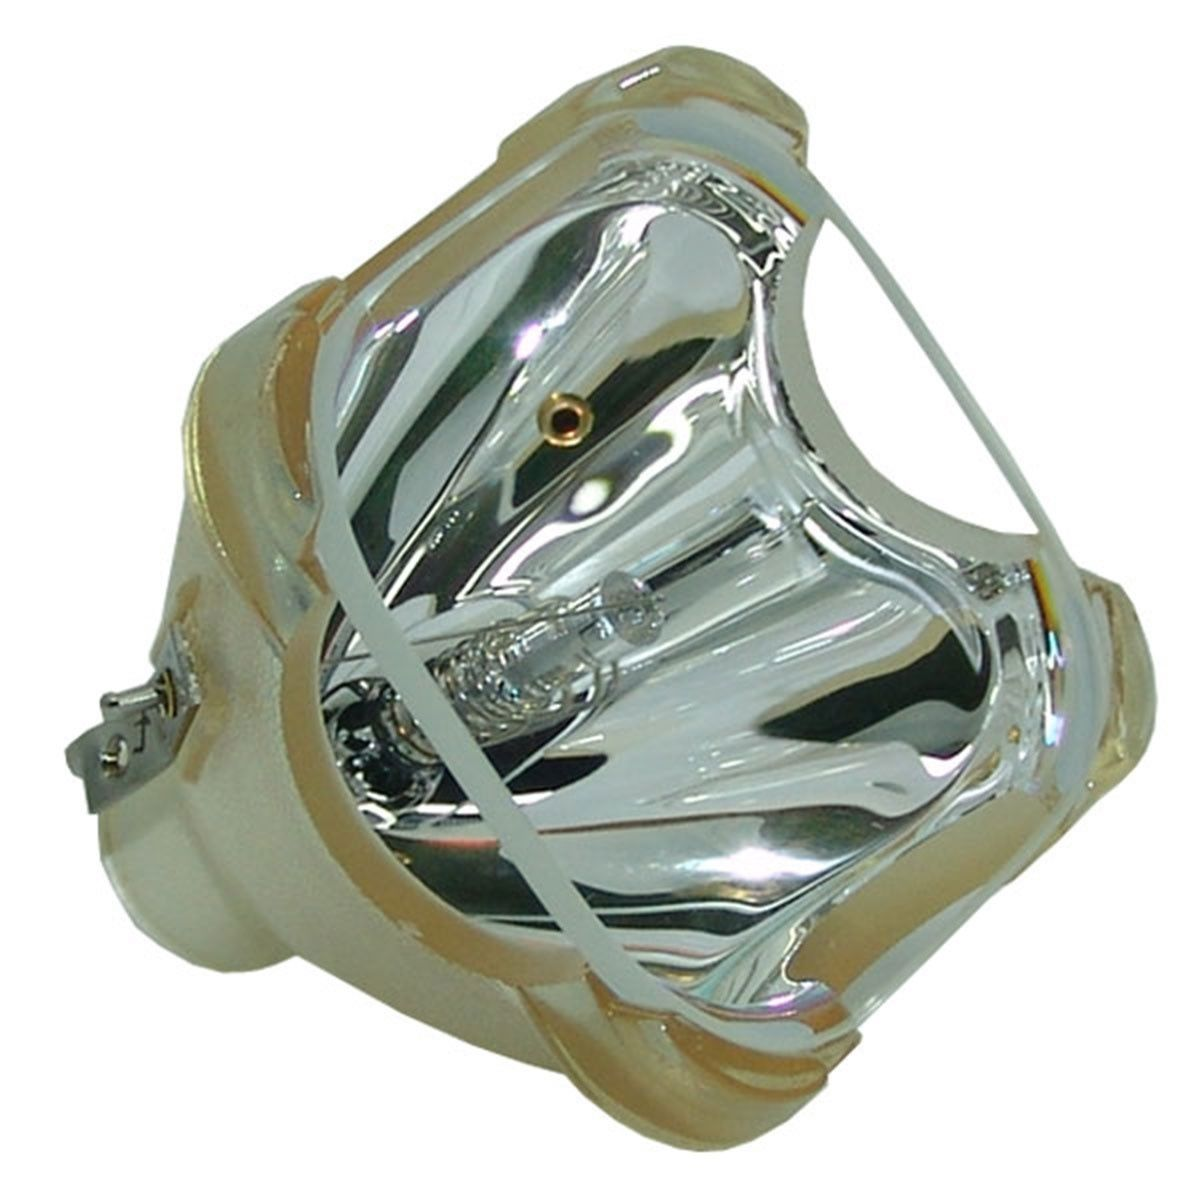 Compatible Bare Bulb LV-LP16 8814A001 for Canon LV-5200 Projector Lamp Bulb without housing compatible bare bulb lv lp30 2481b001 for canon lv 7365 projector lamp bulb without housing